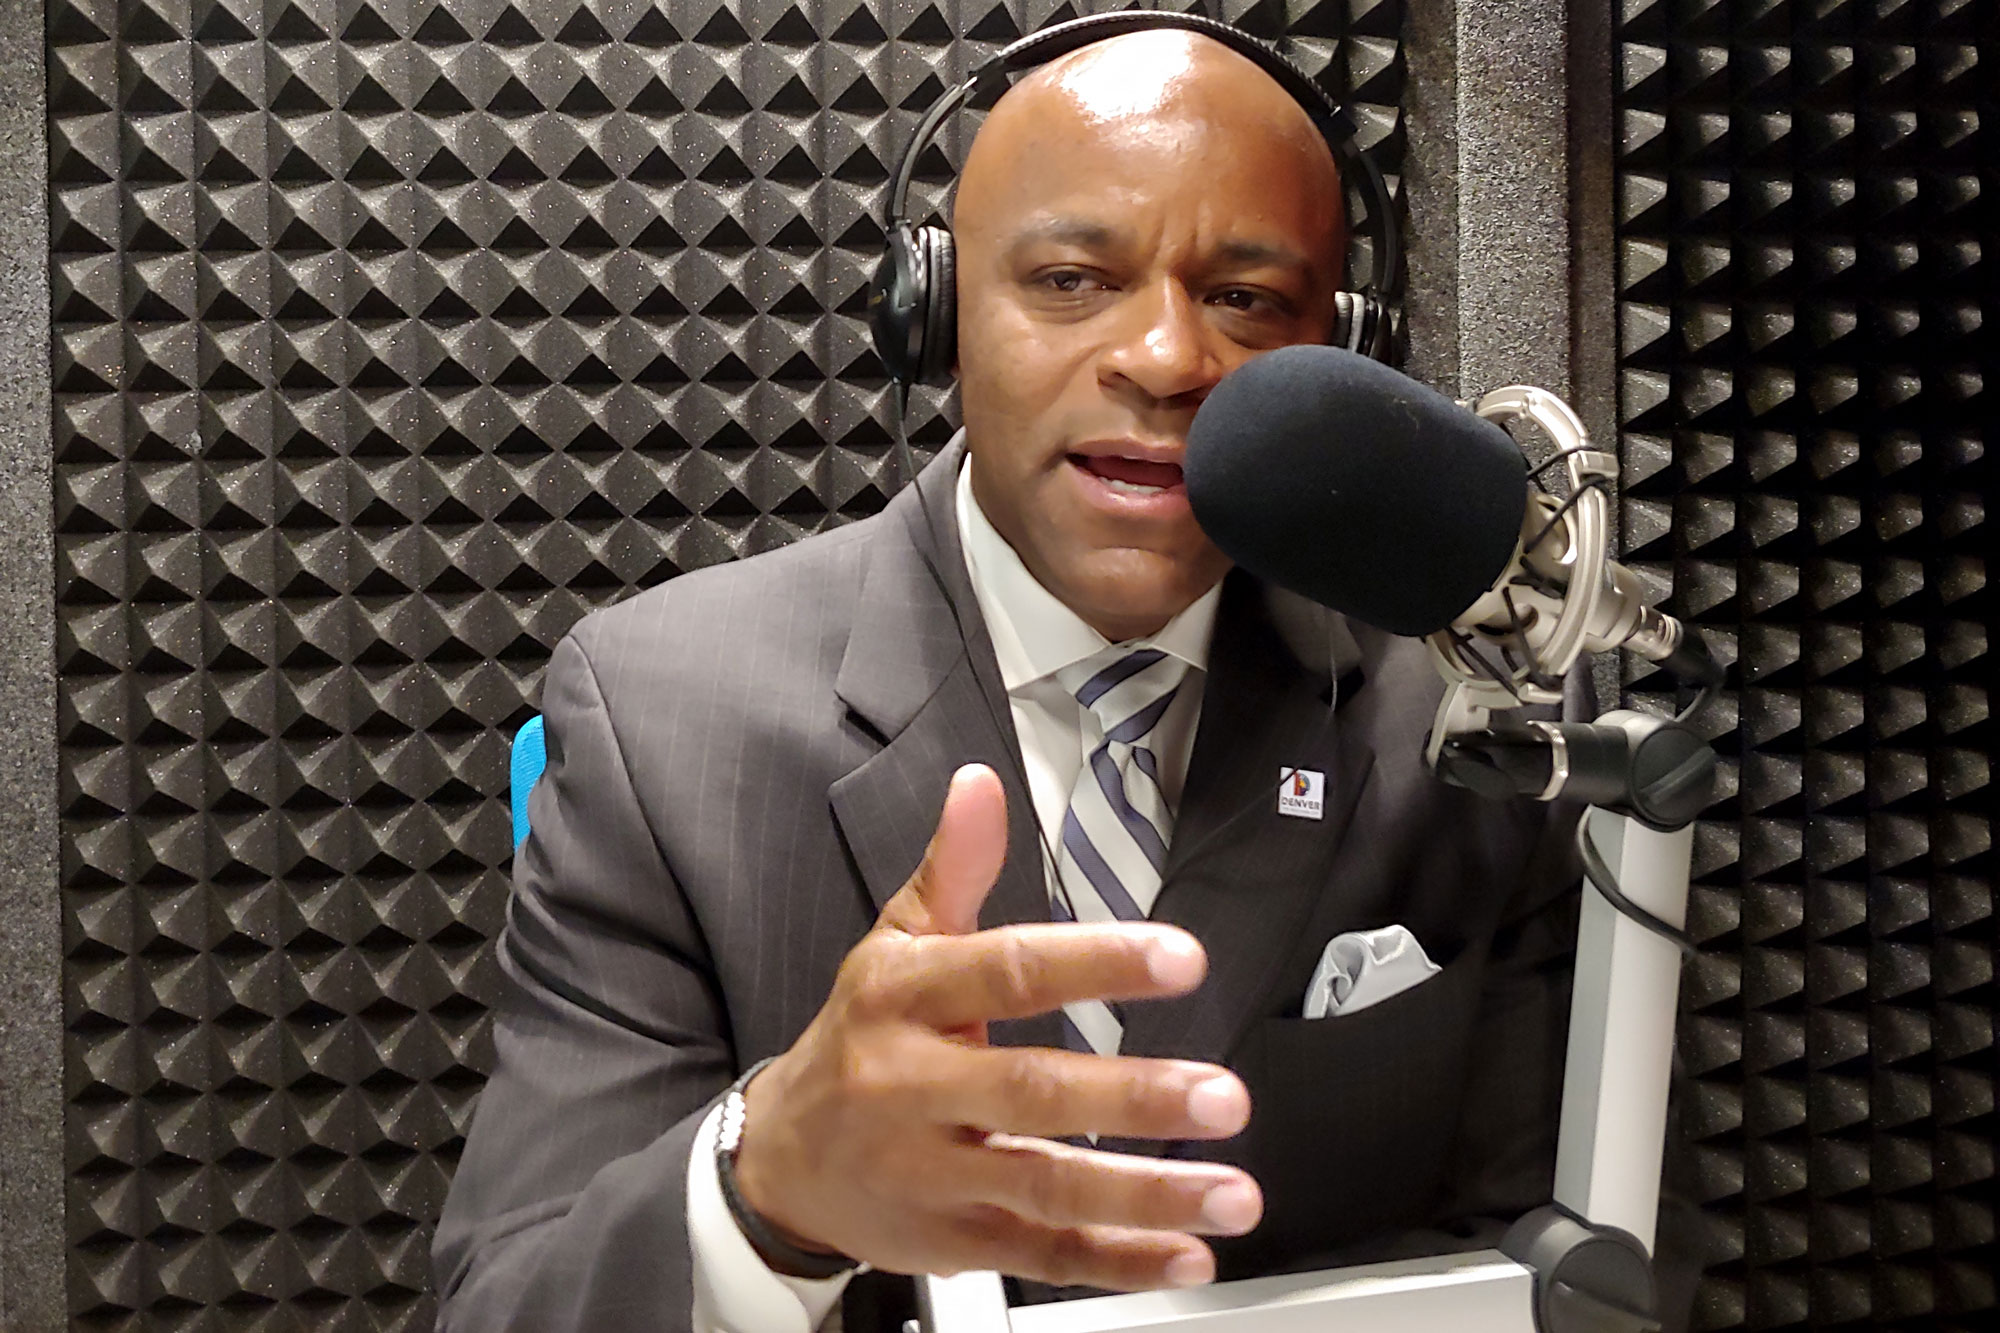 <p>Denver Mayor Michael Hancock gestures during an interview with CPR's Colorado Matters Wednesday June 5 2019, the morning after winning re-election to a third term. He beat challenger Jamie Giellis in a runoff vote.</p>